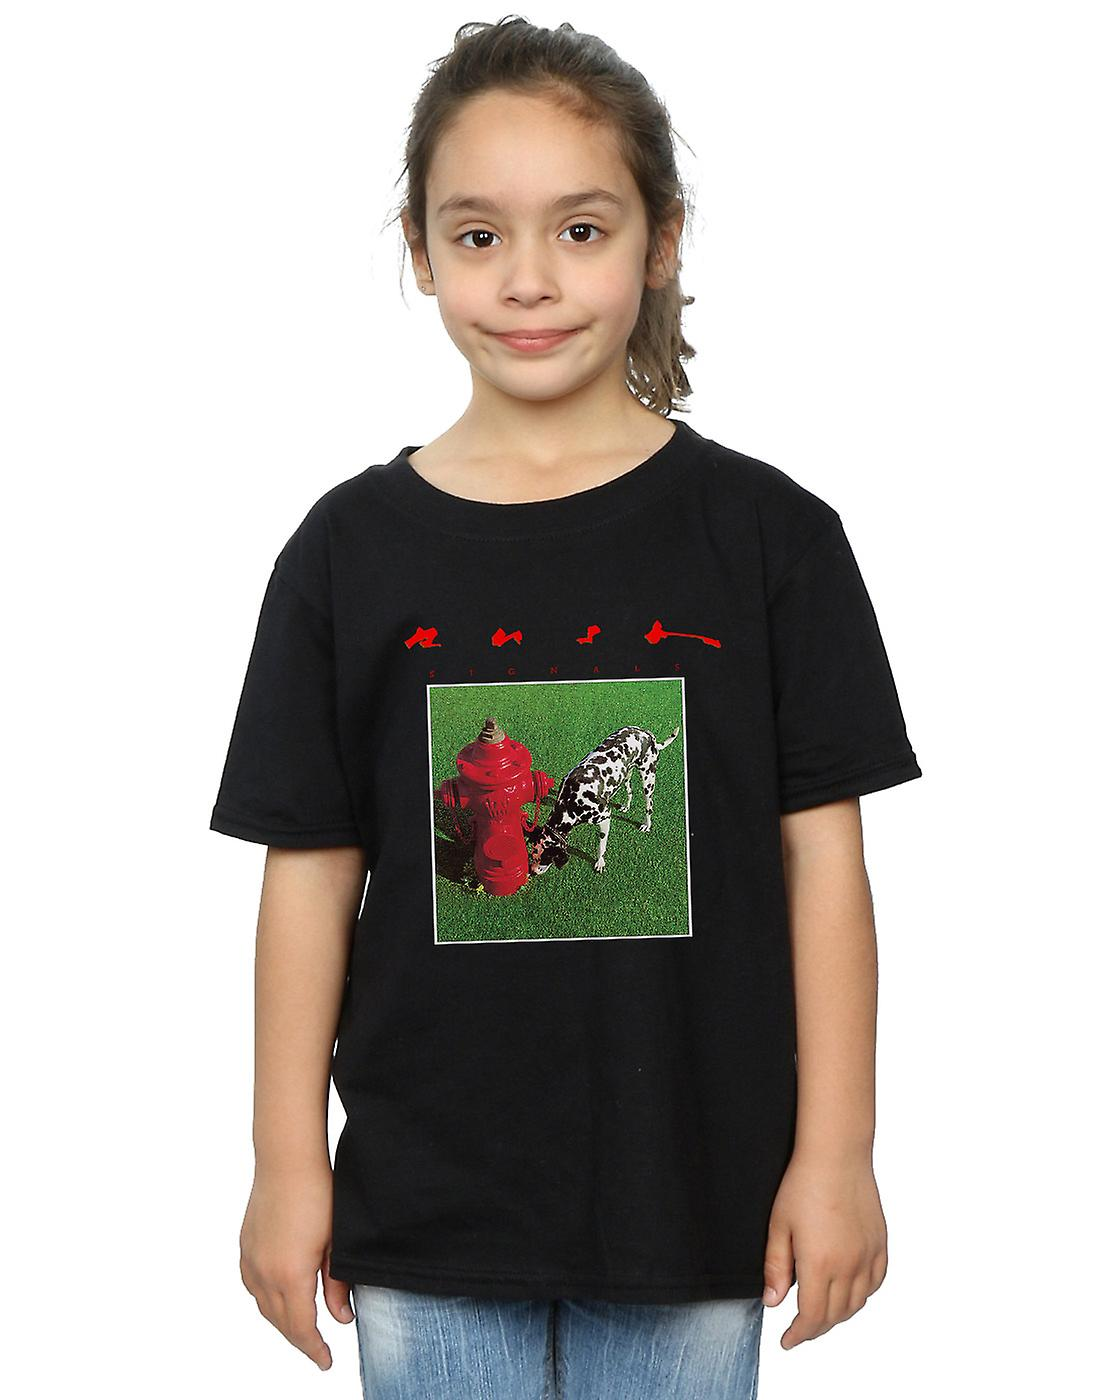 Rush Girls Signals Cover T-Shirt